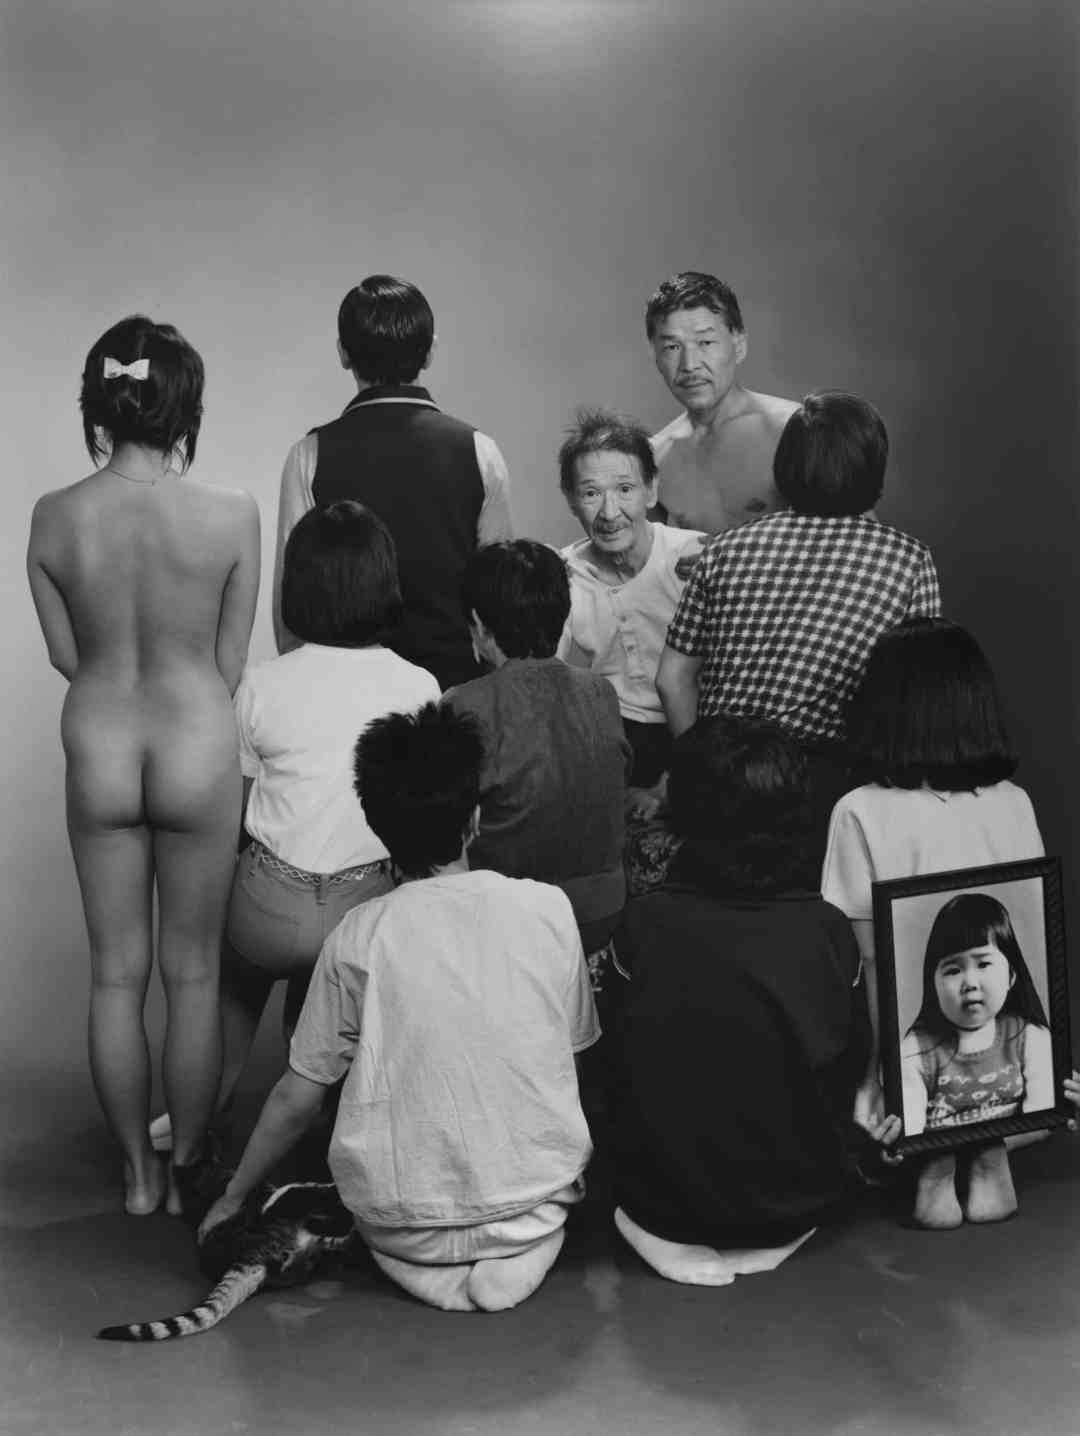 "Masahisa Fukase. Upper row, from left to right: A, a model; Toshiteru, Sukezo, Masahisa. Middle row, from left to right: Akiko, Mitsue, Hisashi Daikoji. Bottom row, from left to right: Gaku, Kyoko, Kanako, and a memorial portrait of Miyako, 1985, from the series ""Family"" (1971-90) © Masahisa Fukase Archives"